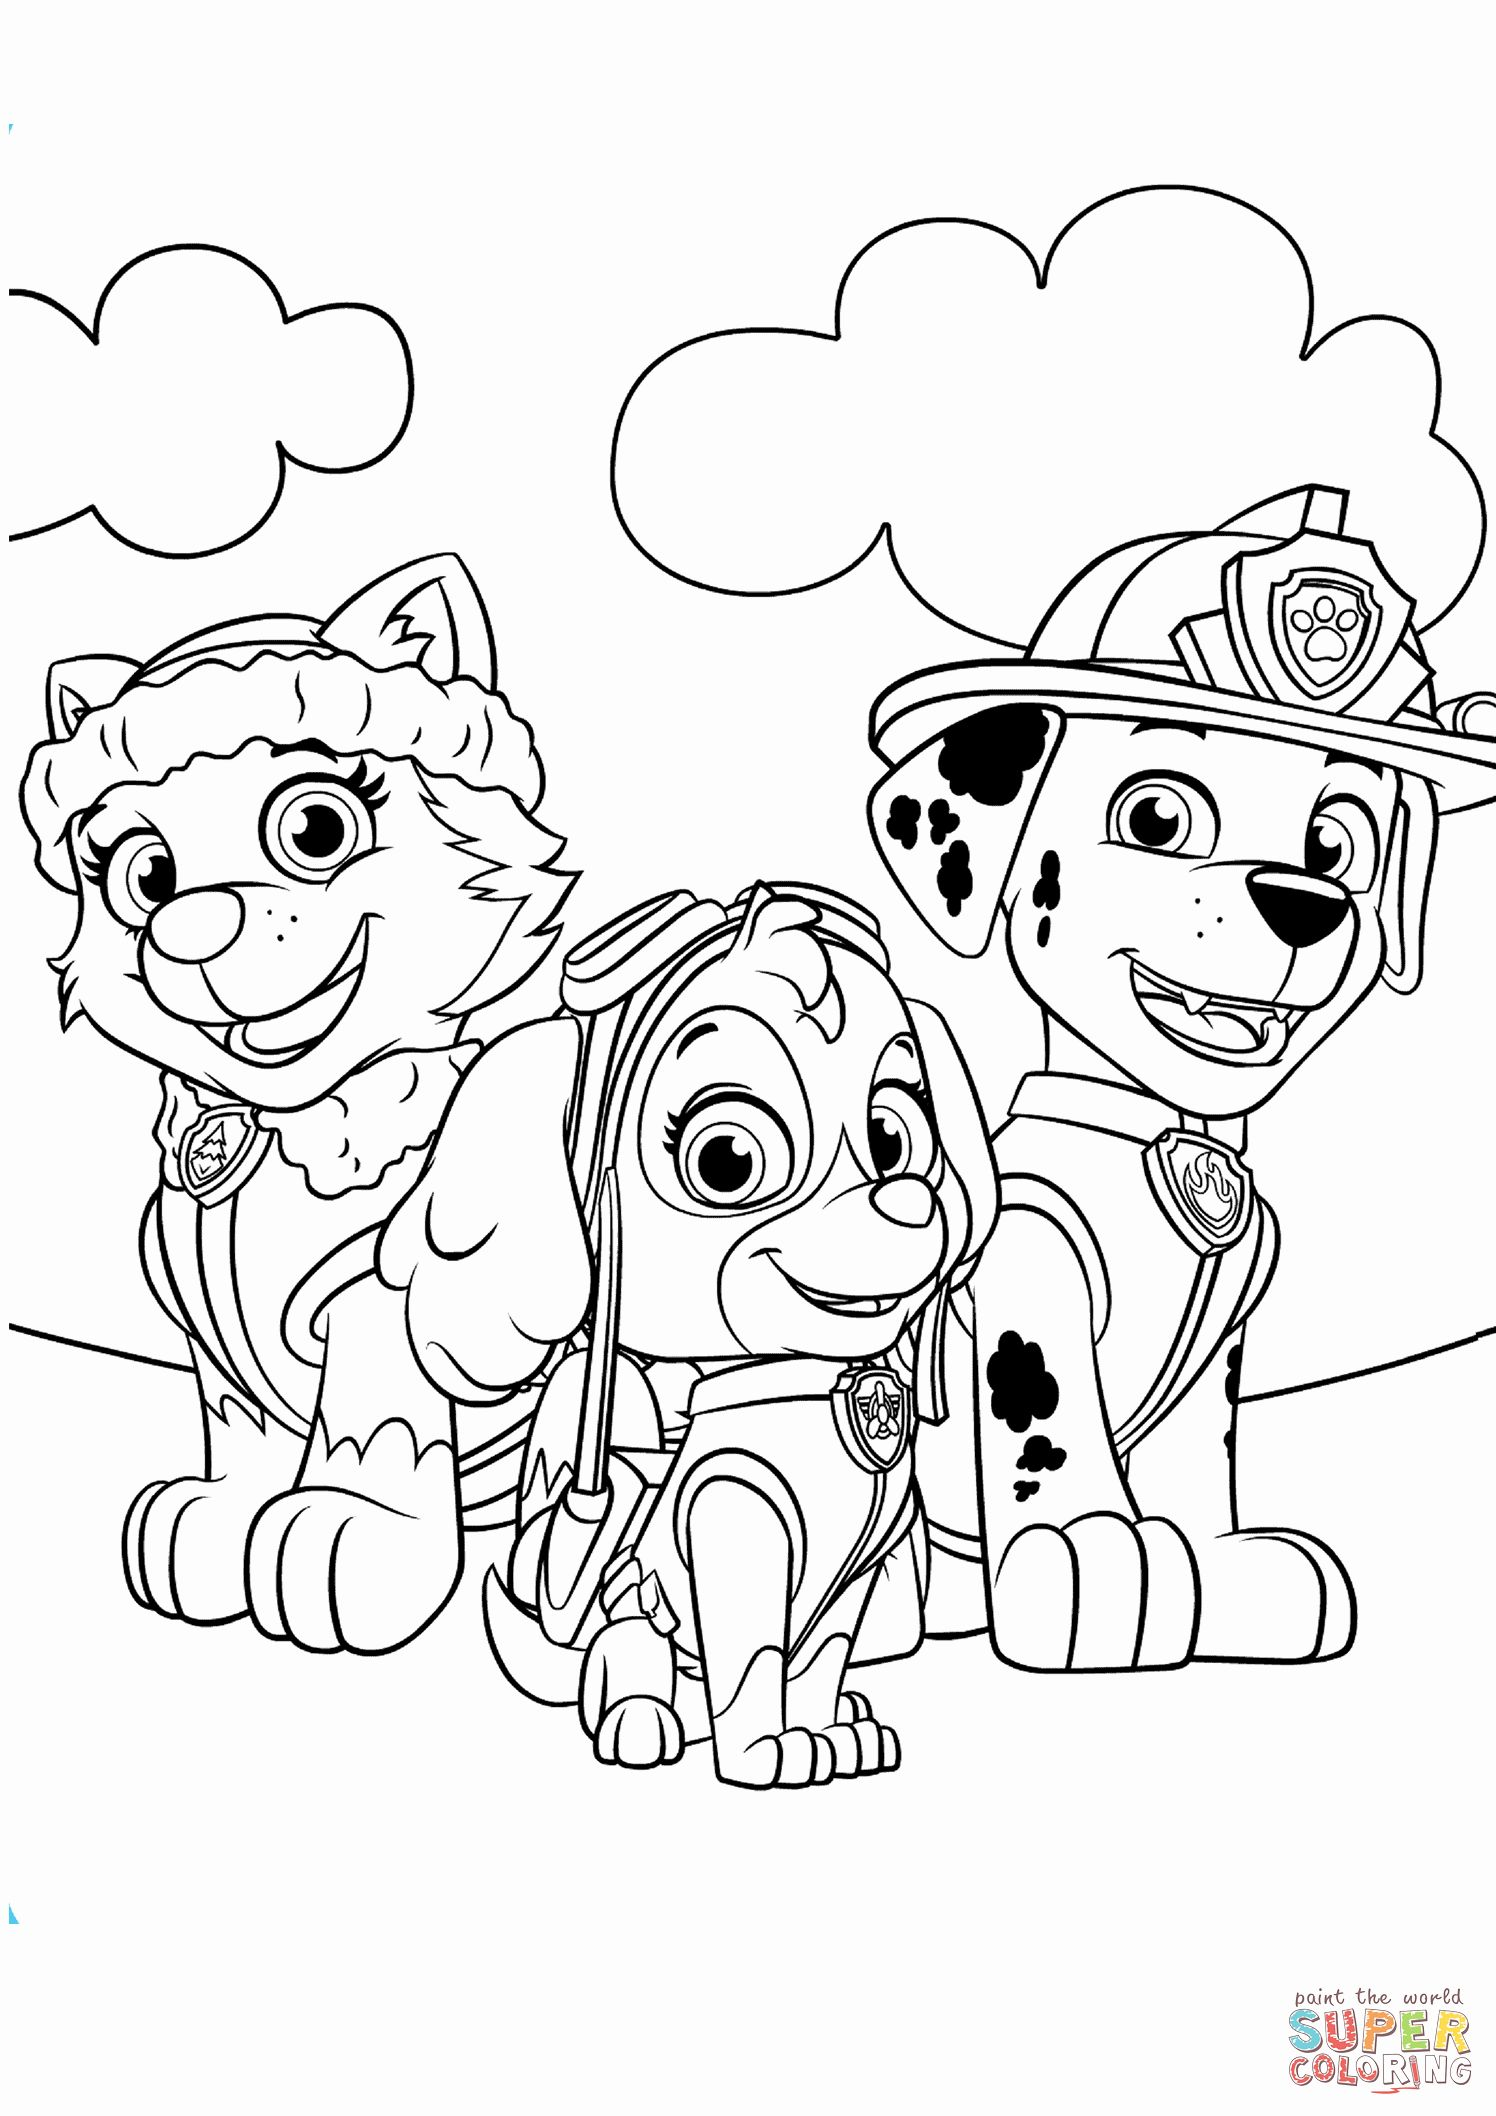 Paw Patrol Skye Coloring Page Best Of Everest Marshall and